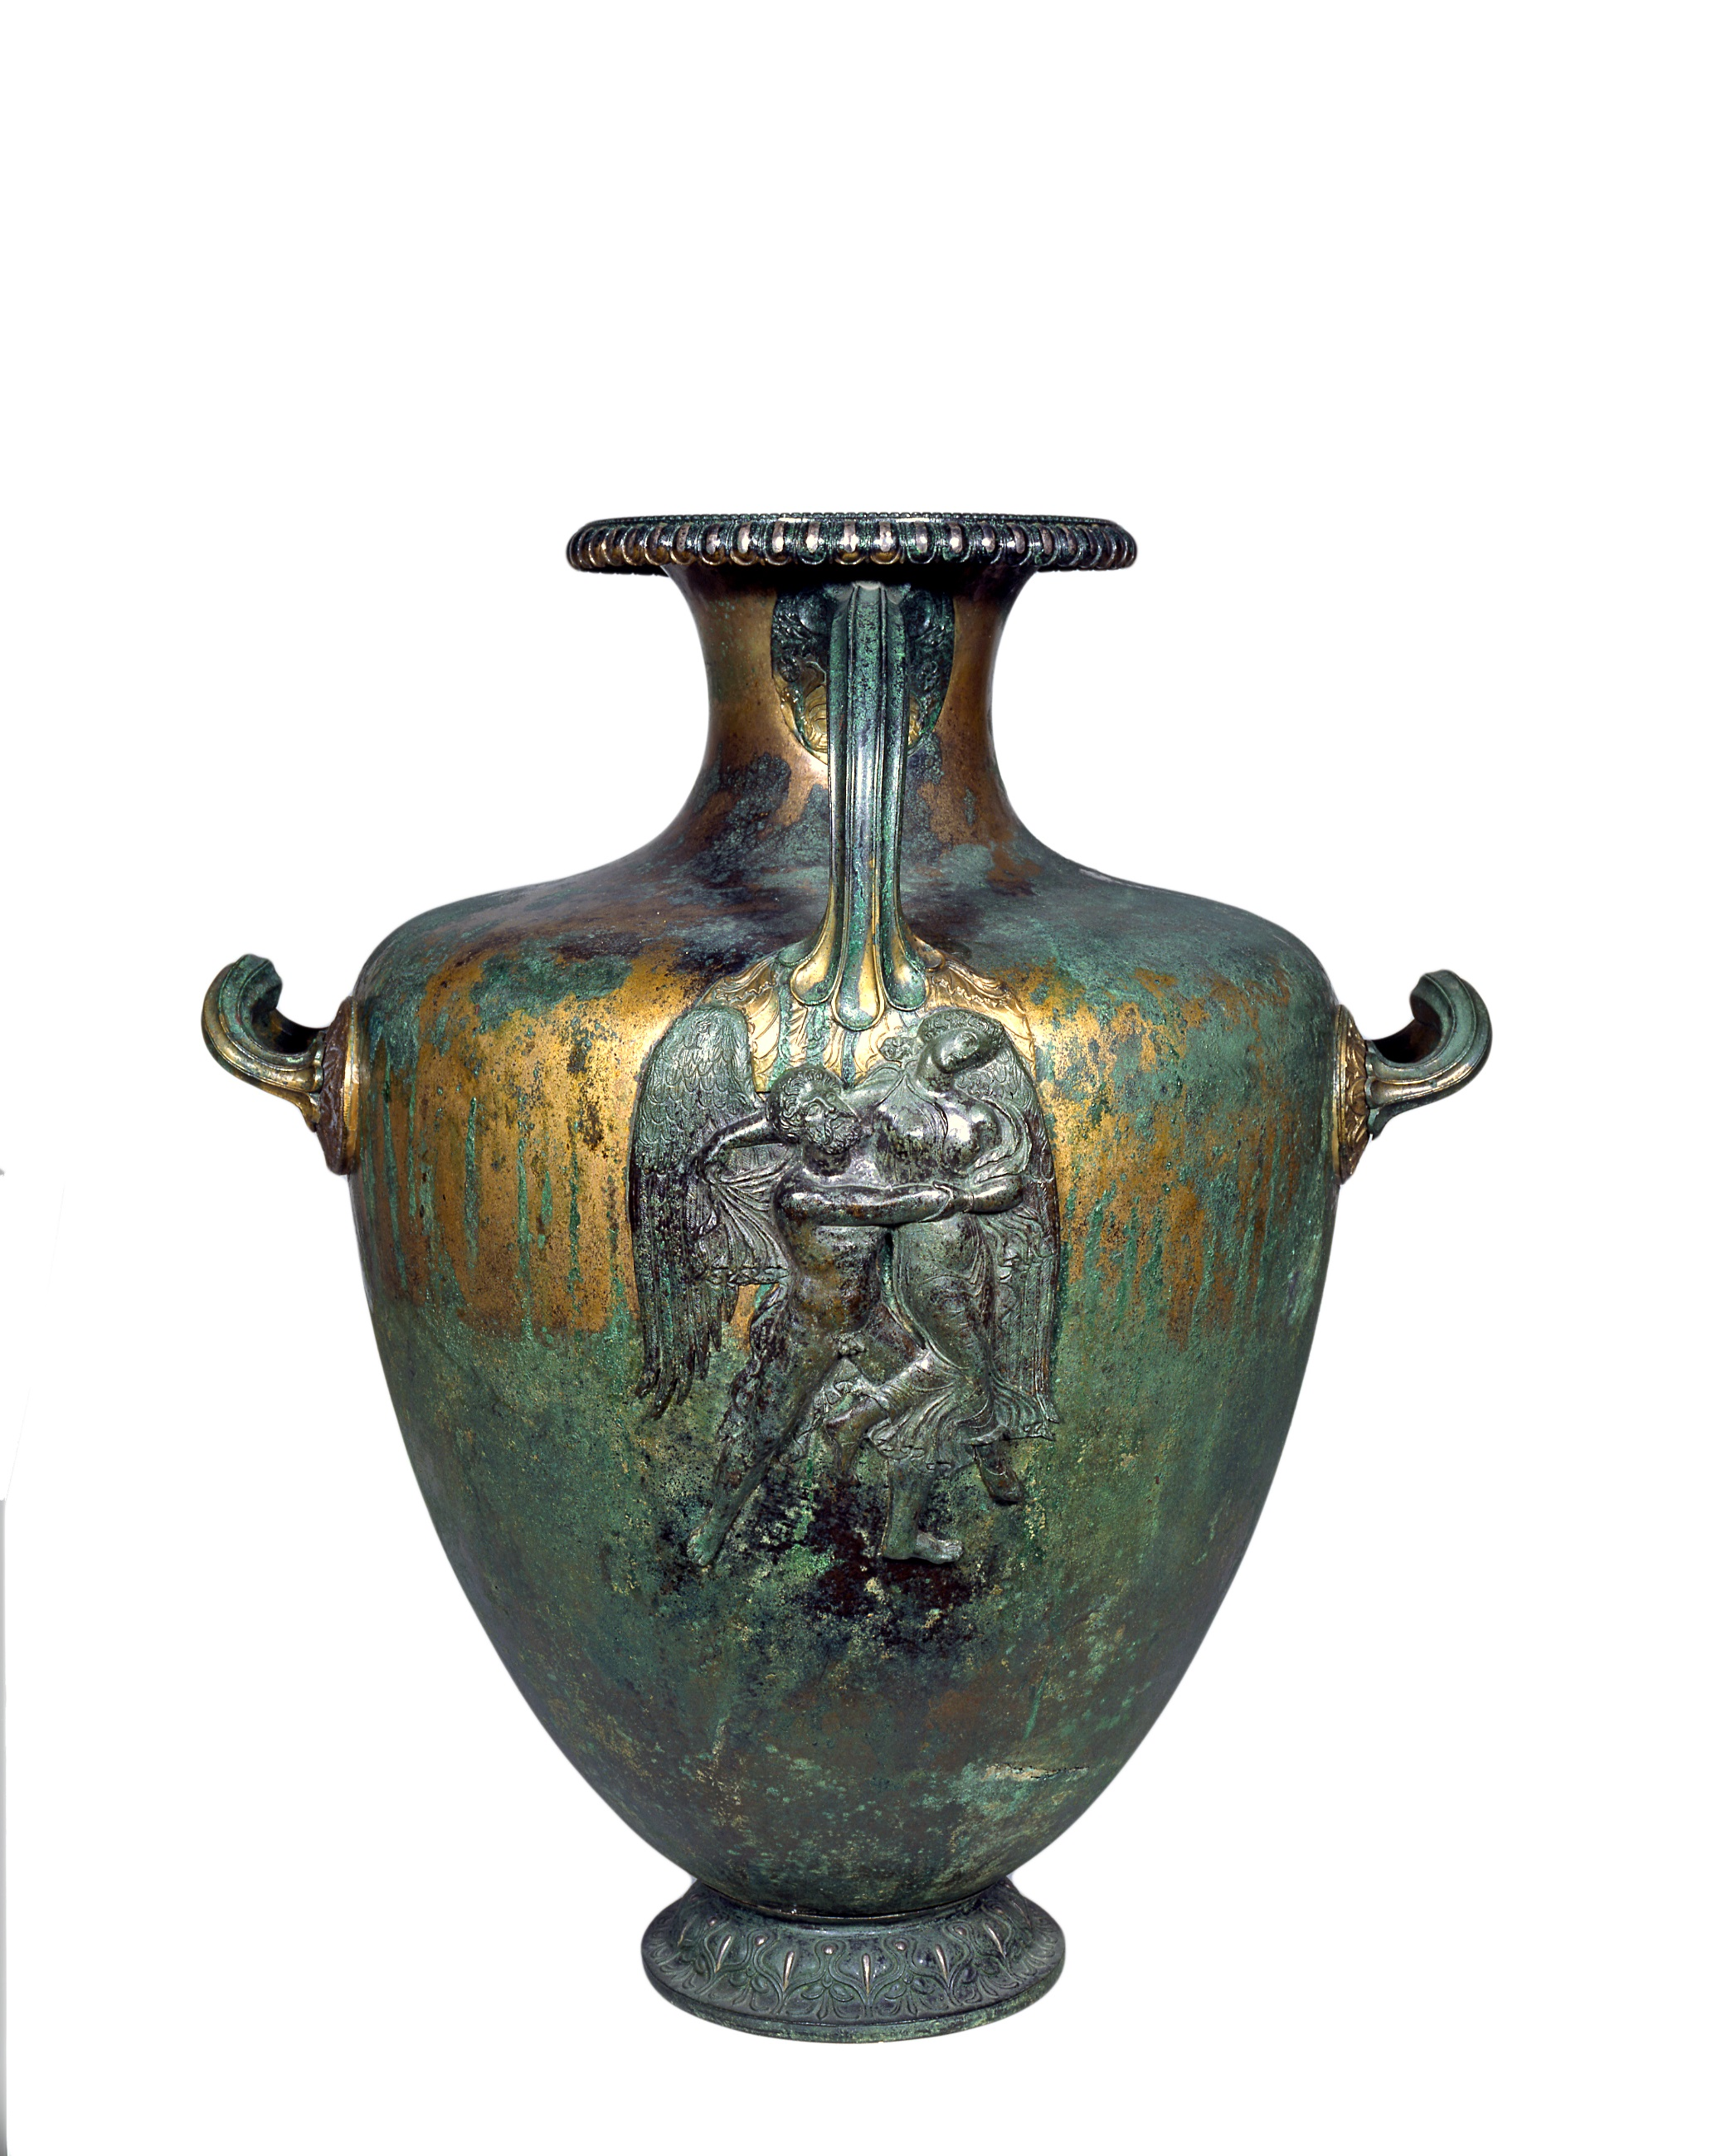 Copper Alloy Hydria with inlaid silver, Representing Boreas Abducting Oreithya – ca 370 BC, Pharsalos, Thessaly. Athens, National Archaeological Museum X18775. Photography Kostas Xenikakis